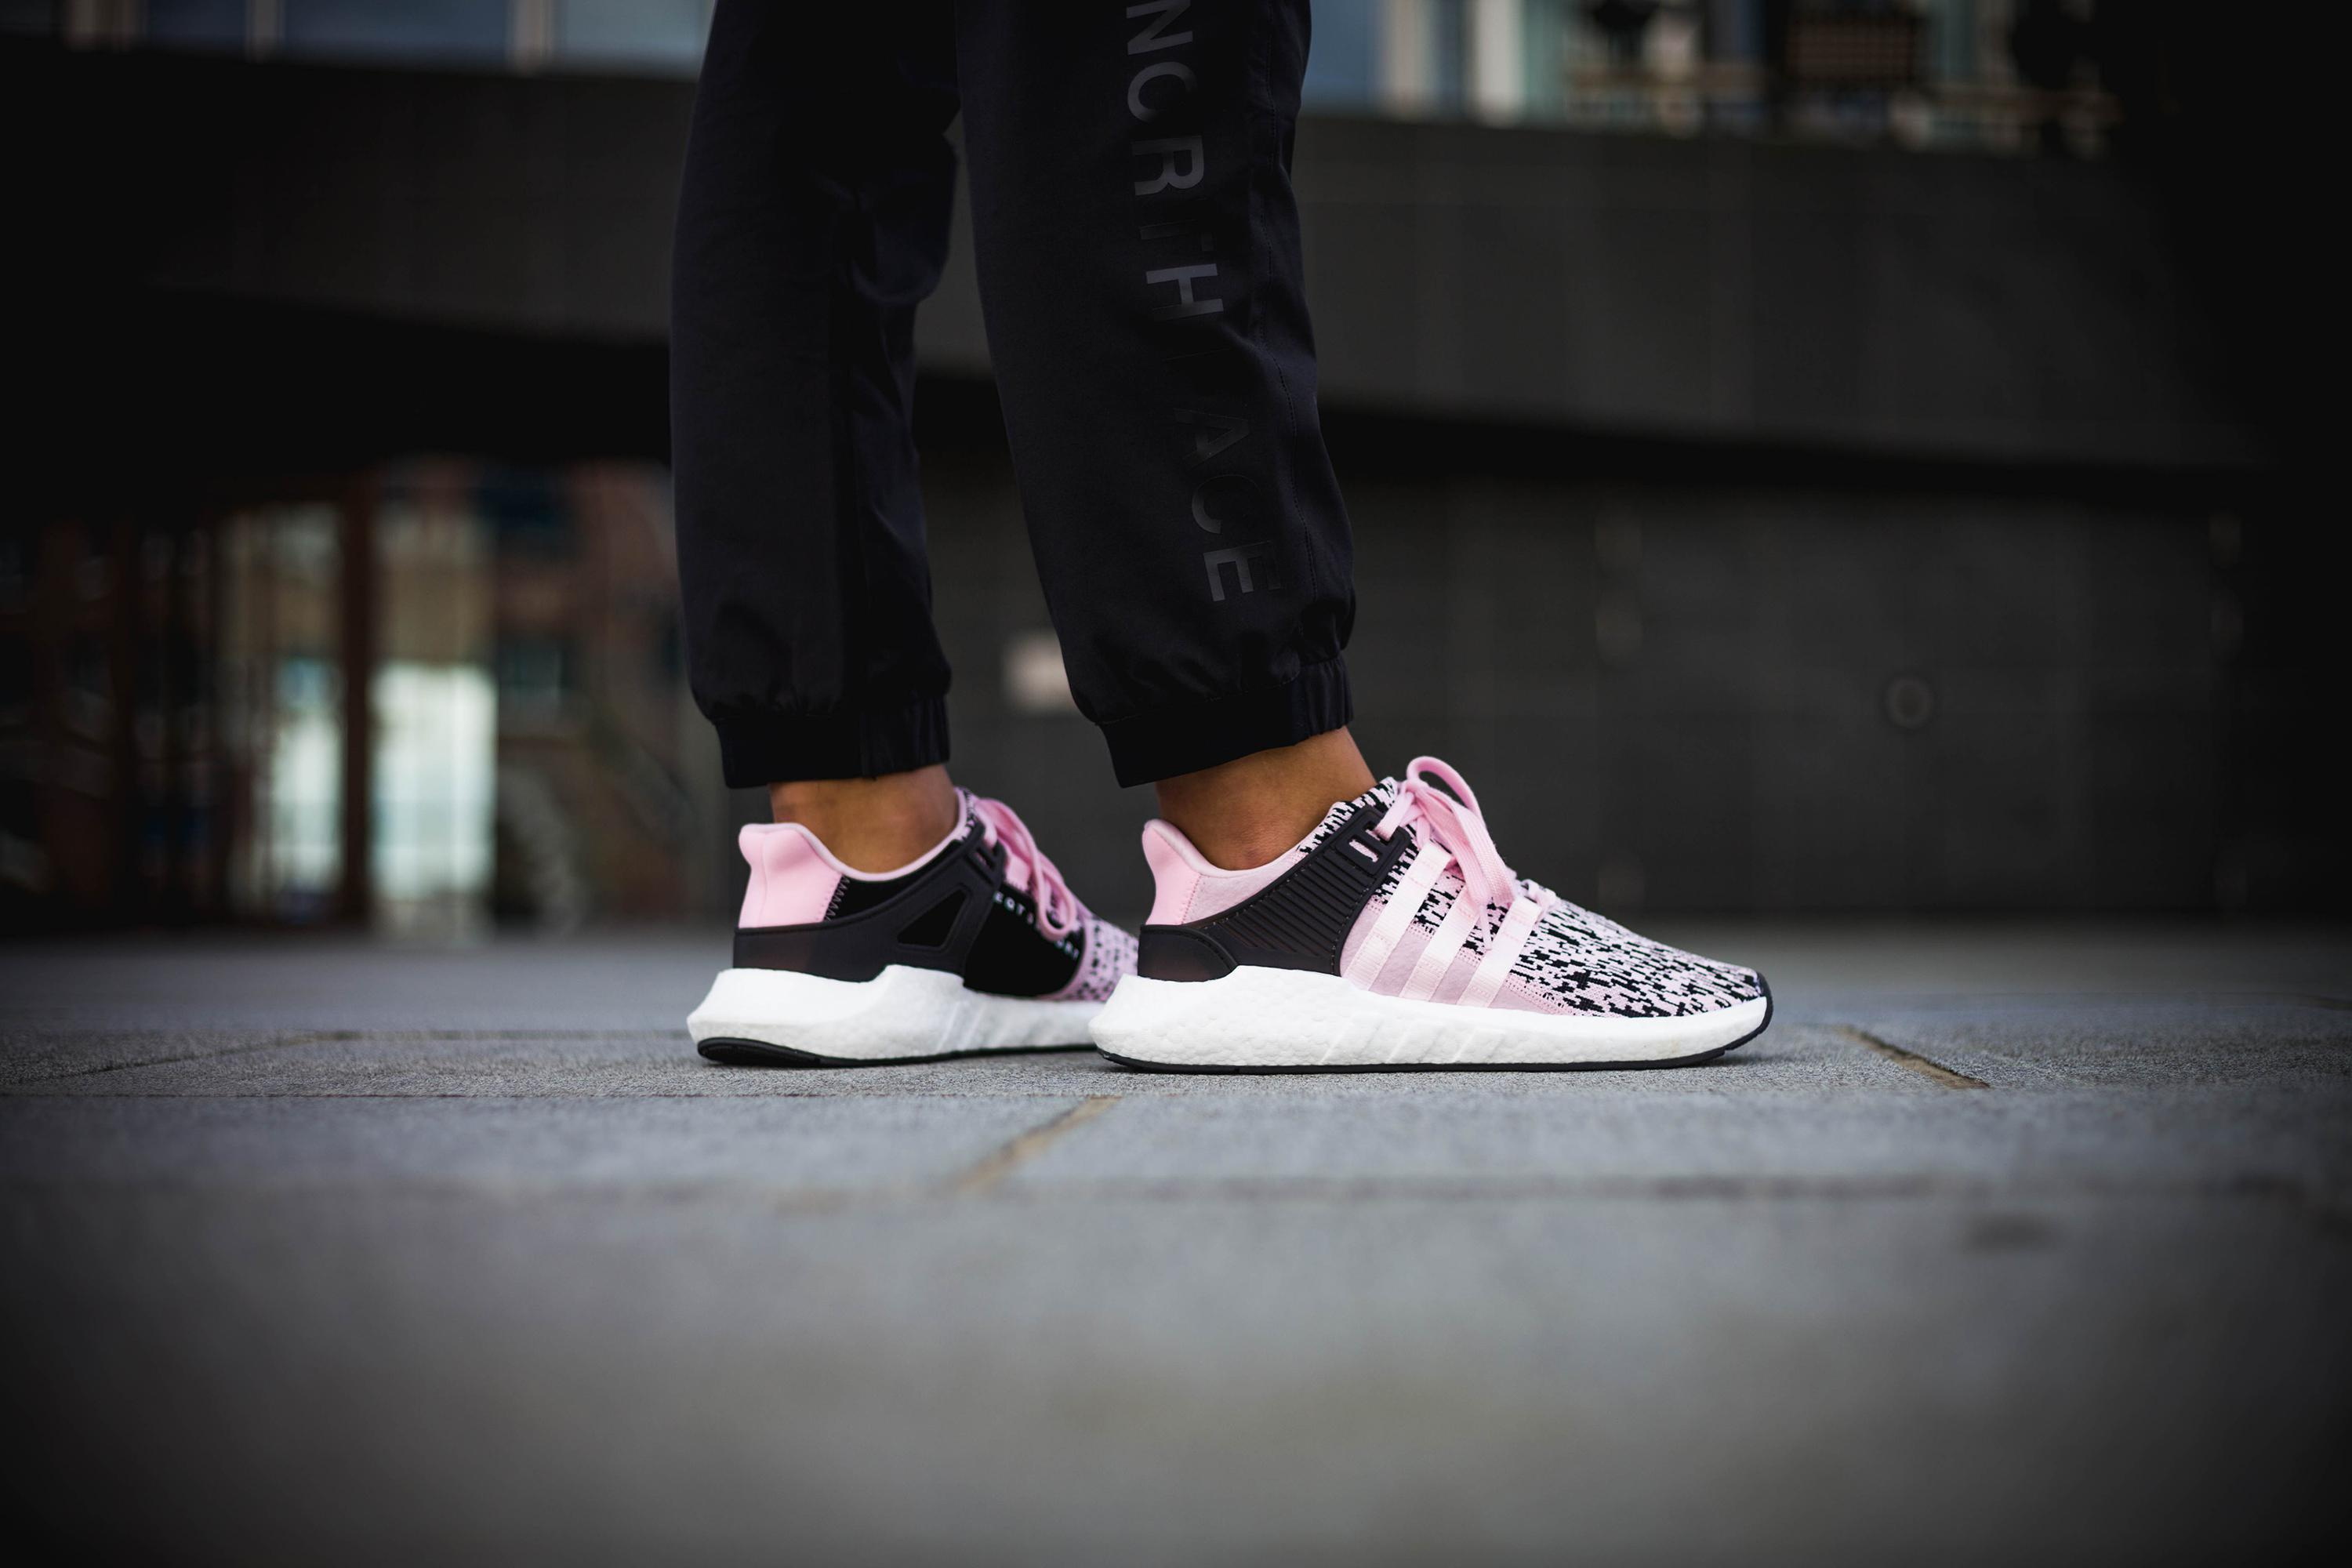 adidas Rubber Eqt Support 9317 Boost